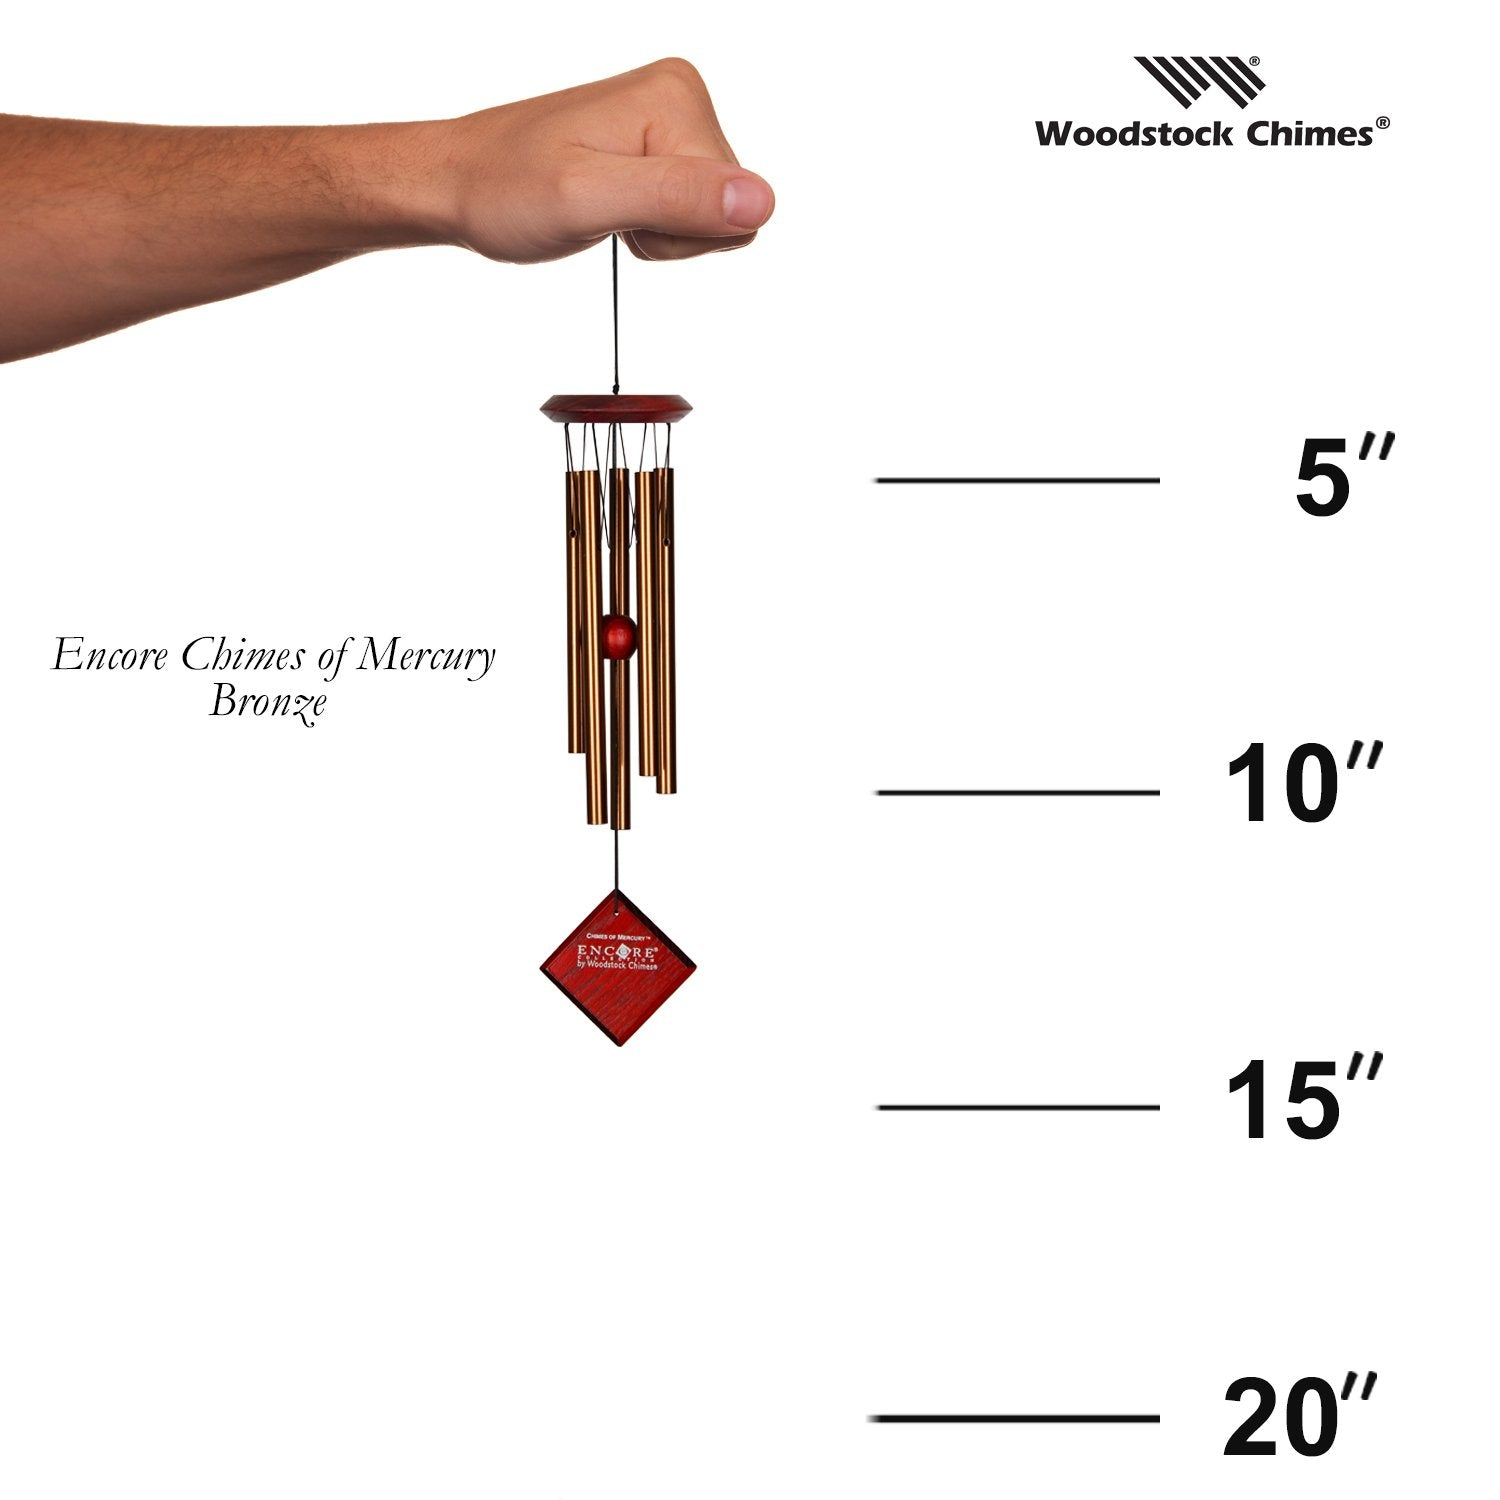 Encore Chimes of Mercury - Bronze proportion image